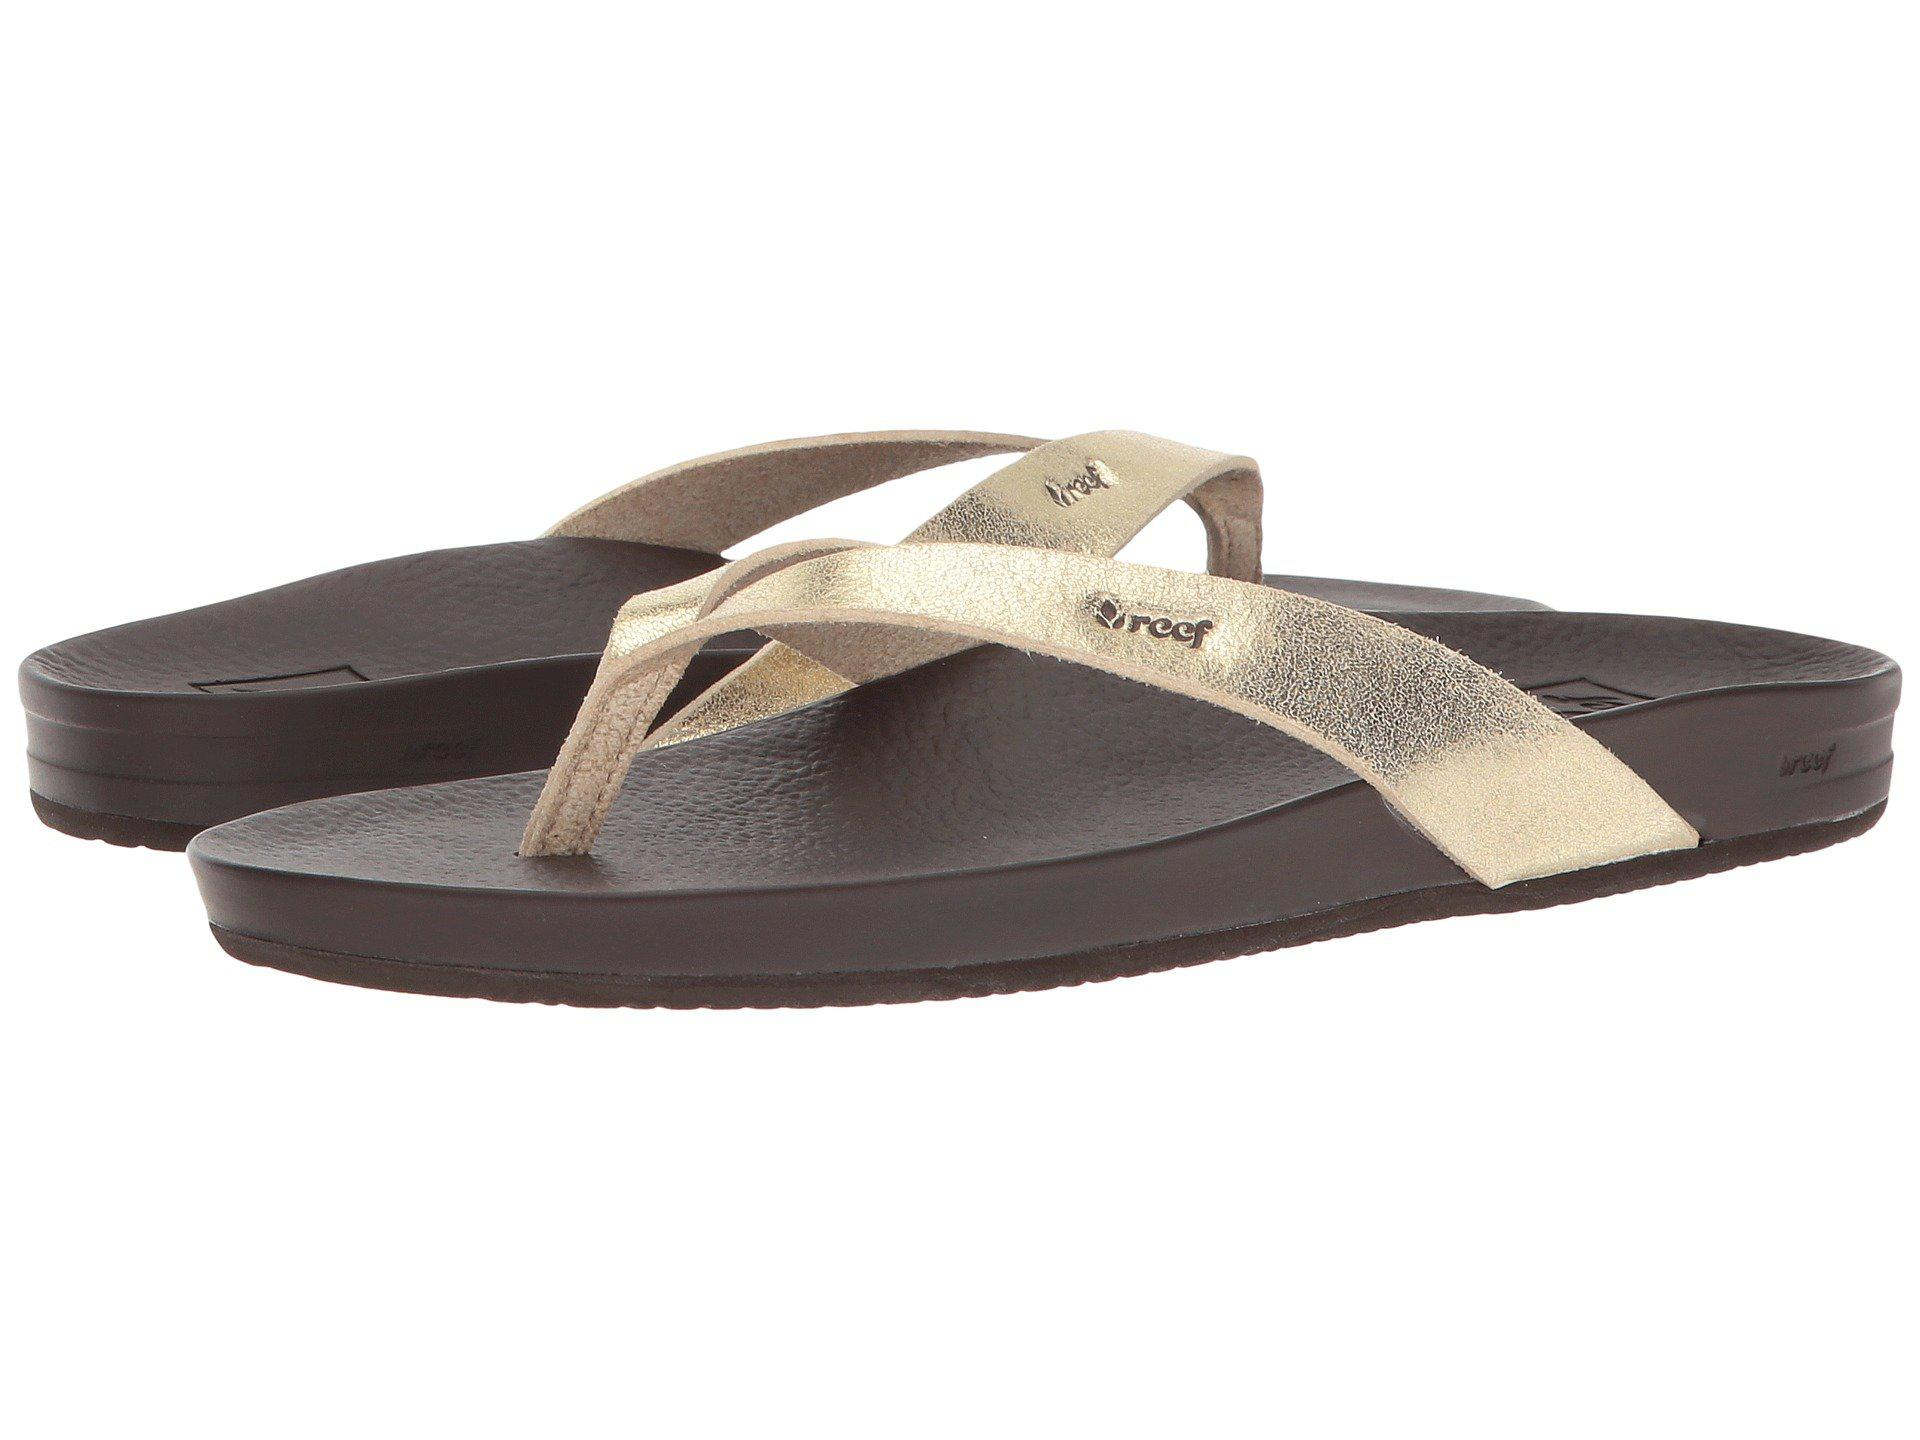 4a3052149df Reef - Multicolor Cushion Bounce Court (rose Gold) Women s Sandals - Lyst.  View fullscreen